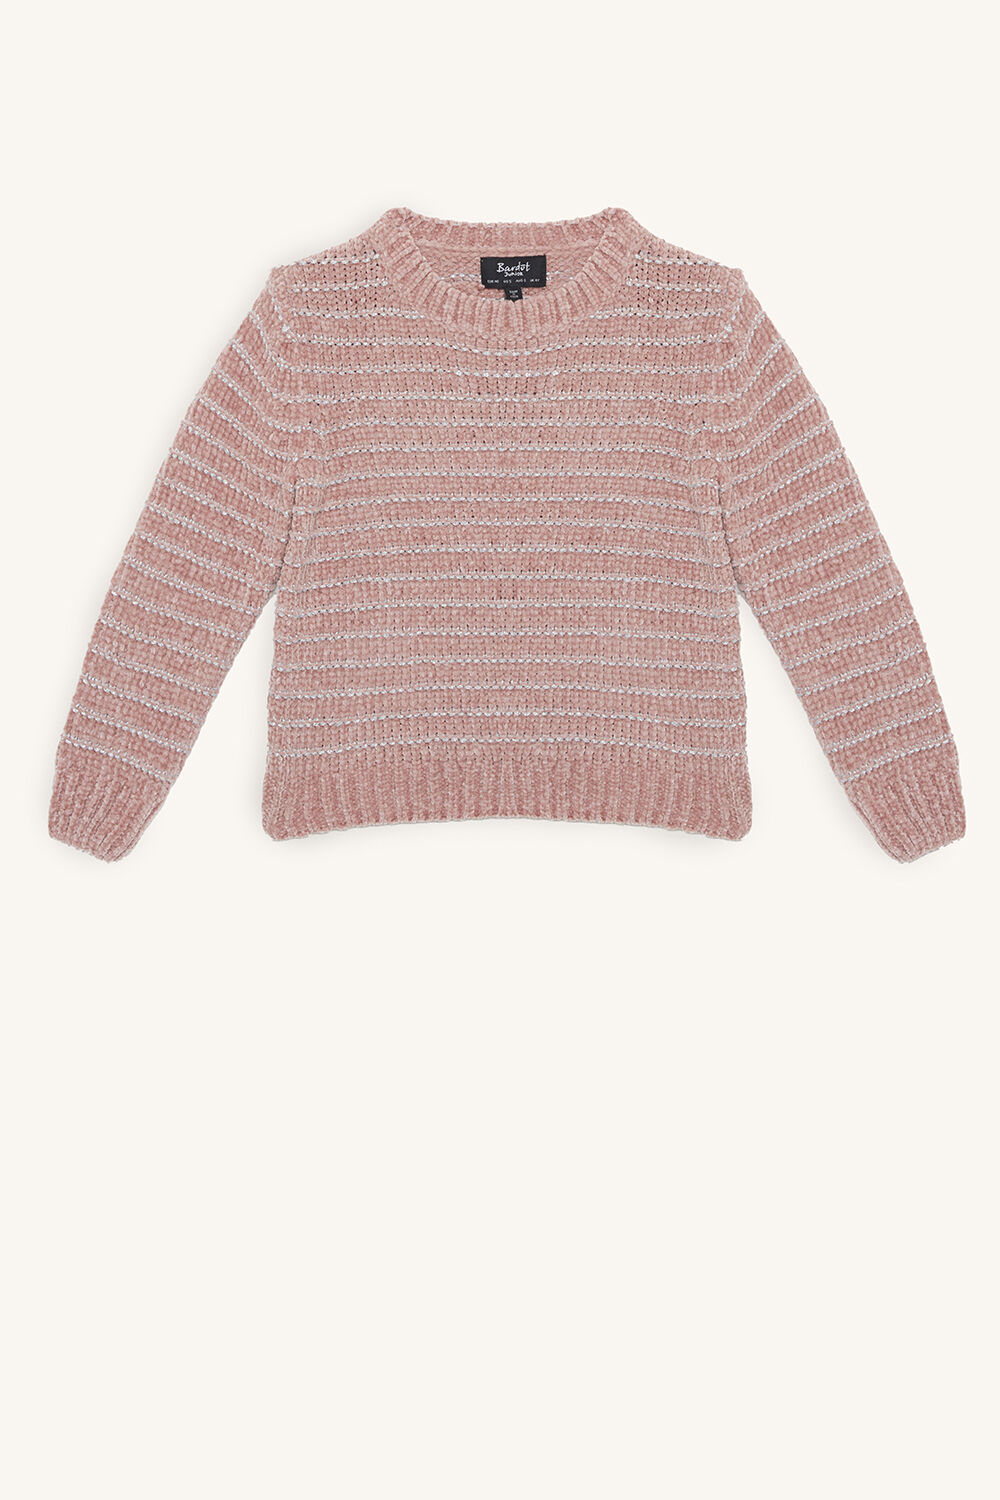 ROSE SHIMMER KNIT in colour SILVER PINK